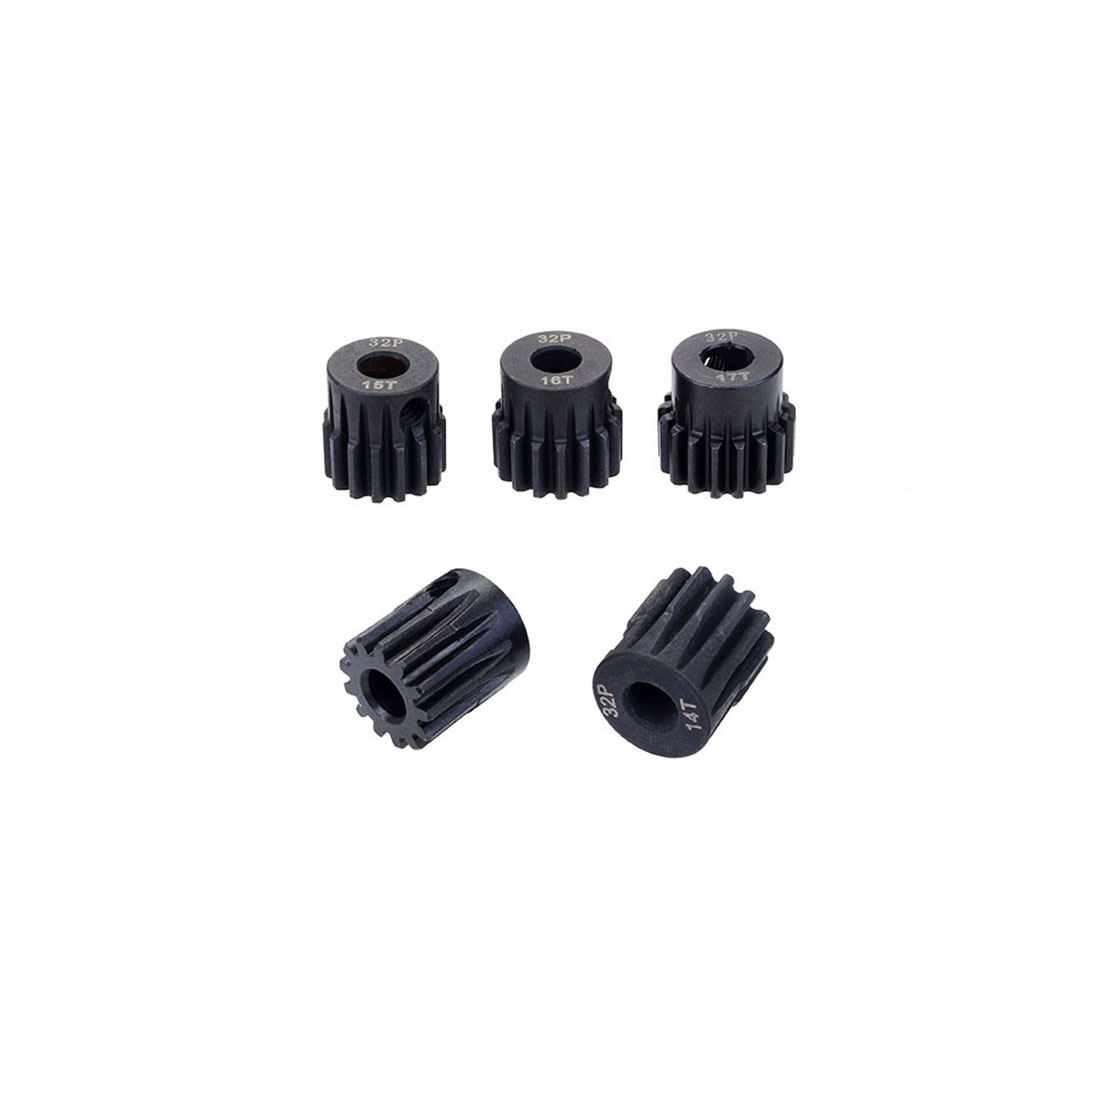 SURPASS HOBBY 5Pcs 32DP 5mm 13T 14T 15T 16T 17T 20T 21T Metal Pinion <font><b>Motor</b></font> <font><b>Gear</b></font> Set for 1/8 <font><b>RC</b></font> Car Truck Brushed <font><b>Brushless</b></font> <font><b>Motor</b></font> image